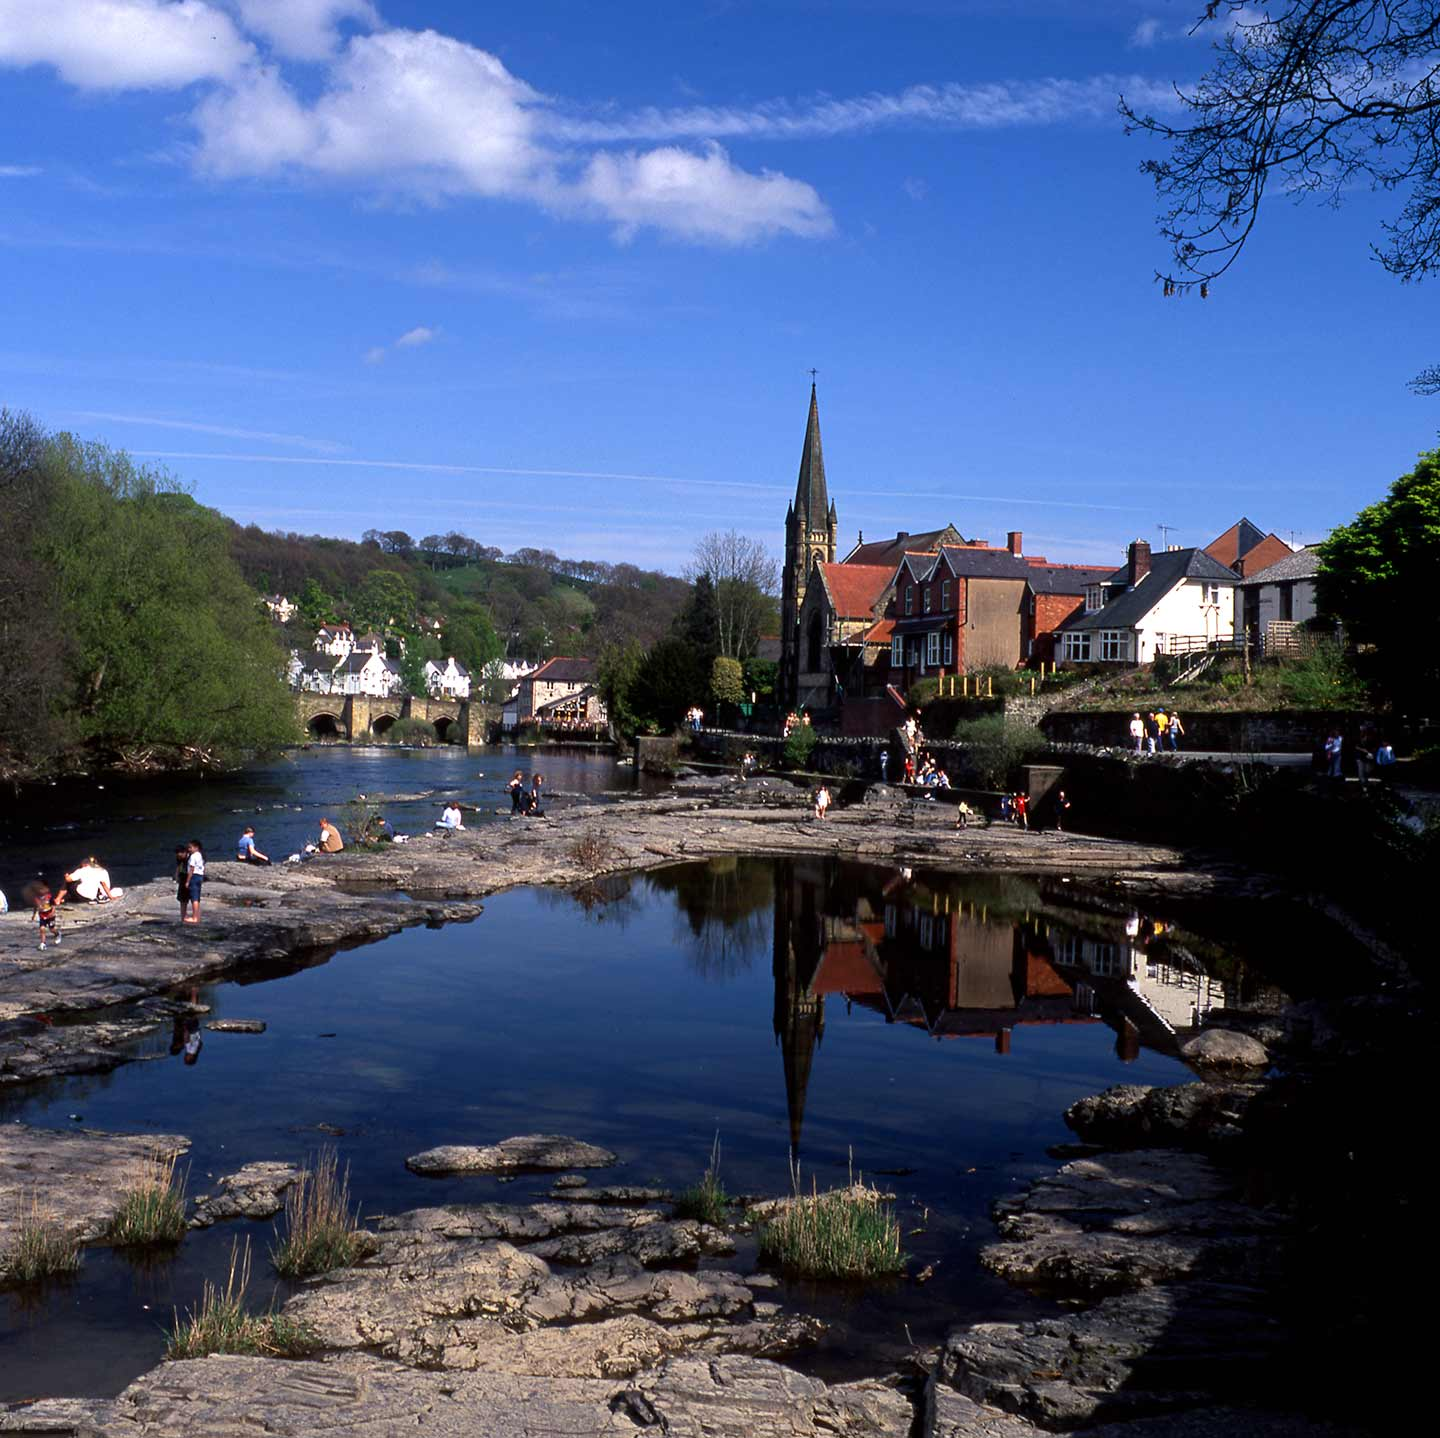 Image of the town of Llangollen and the River Dee